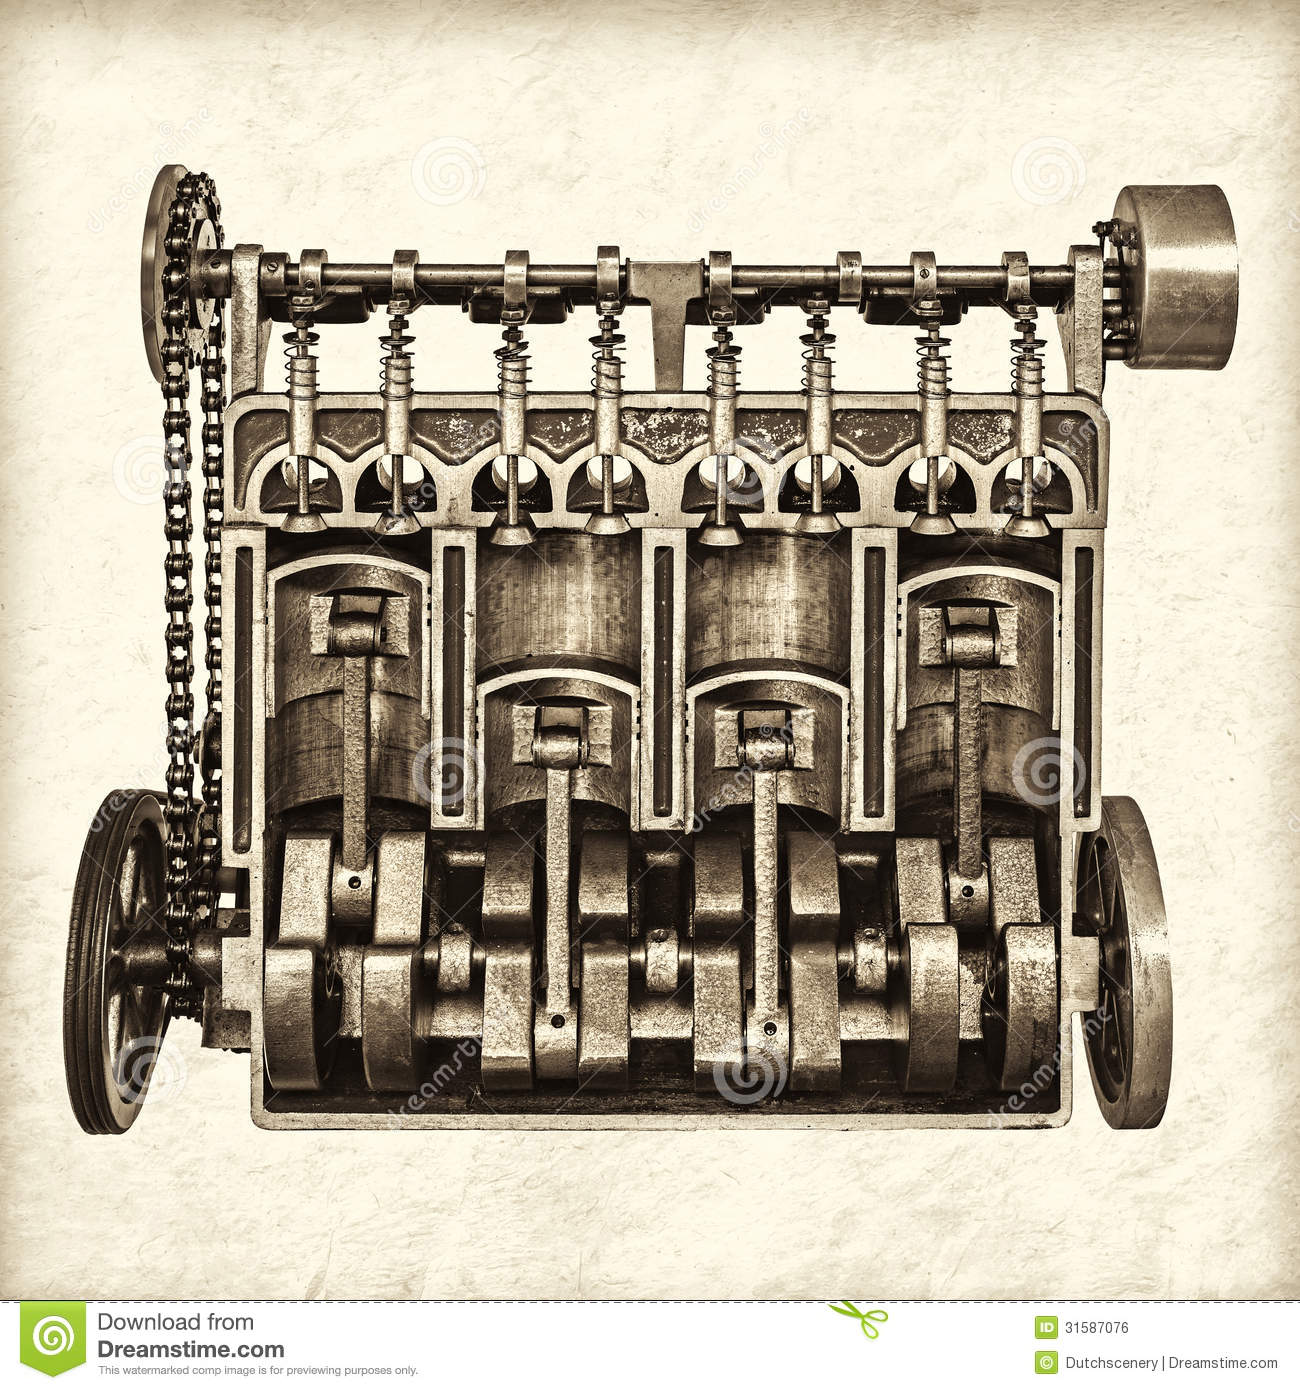 Retro Styled Image Of An Old Classic Car Engine Stock Photo - Image ...